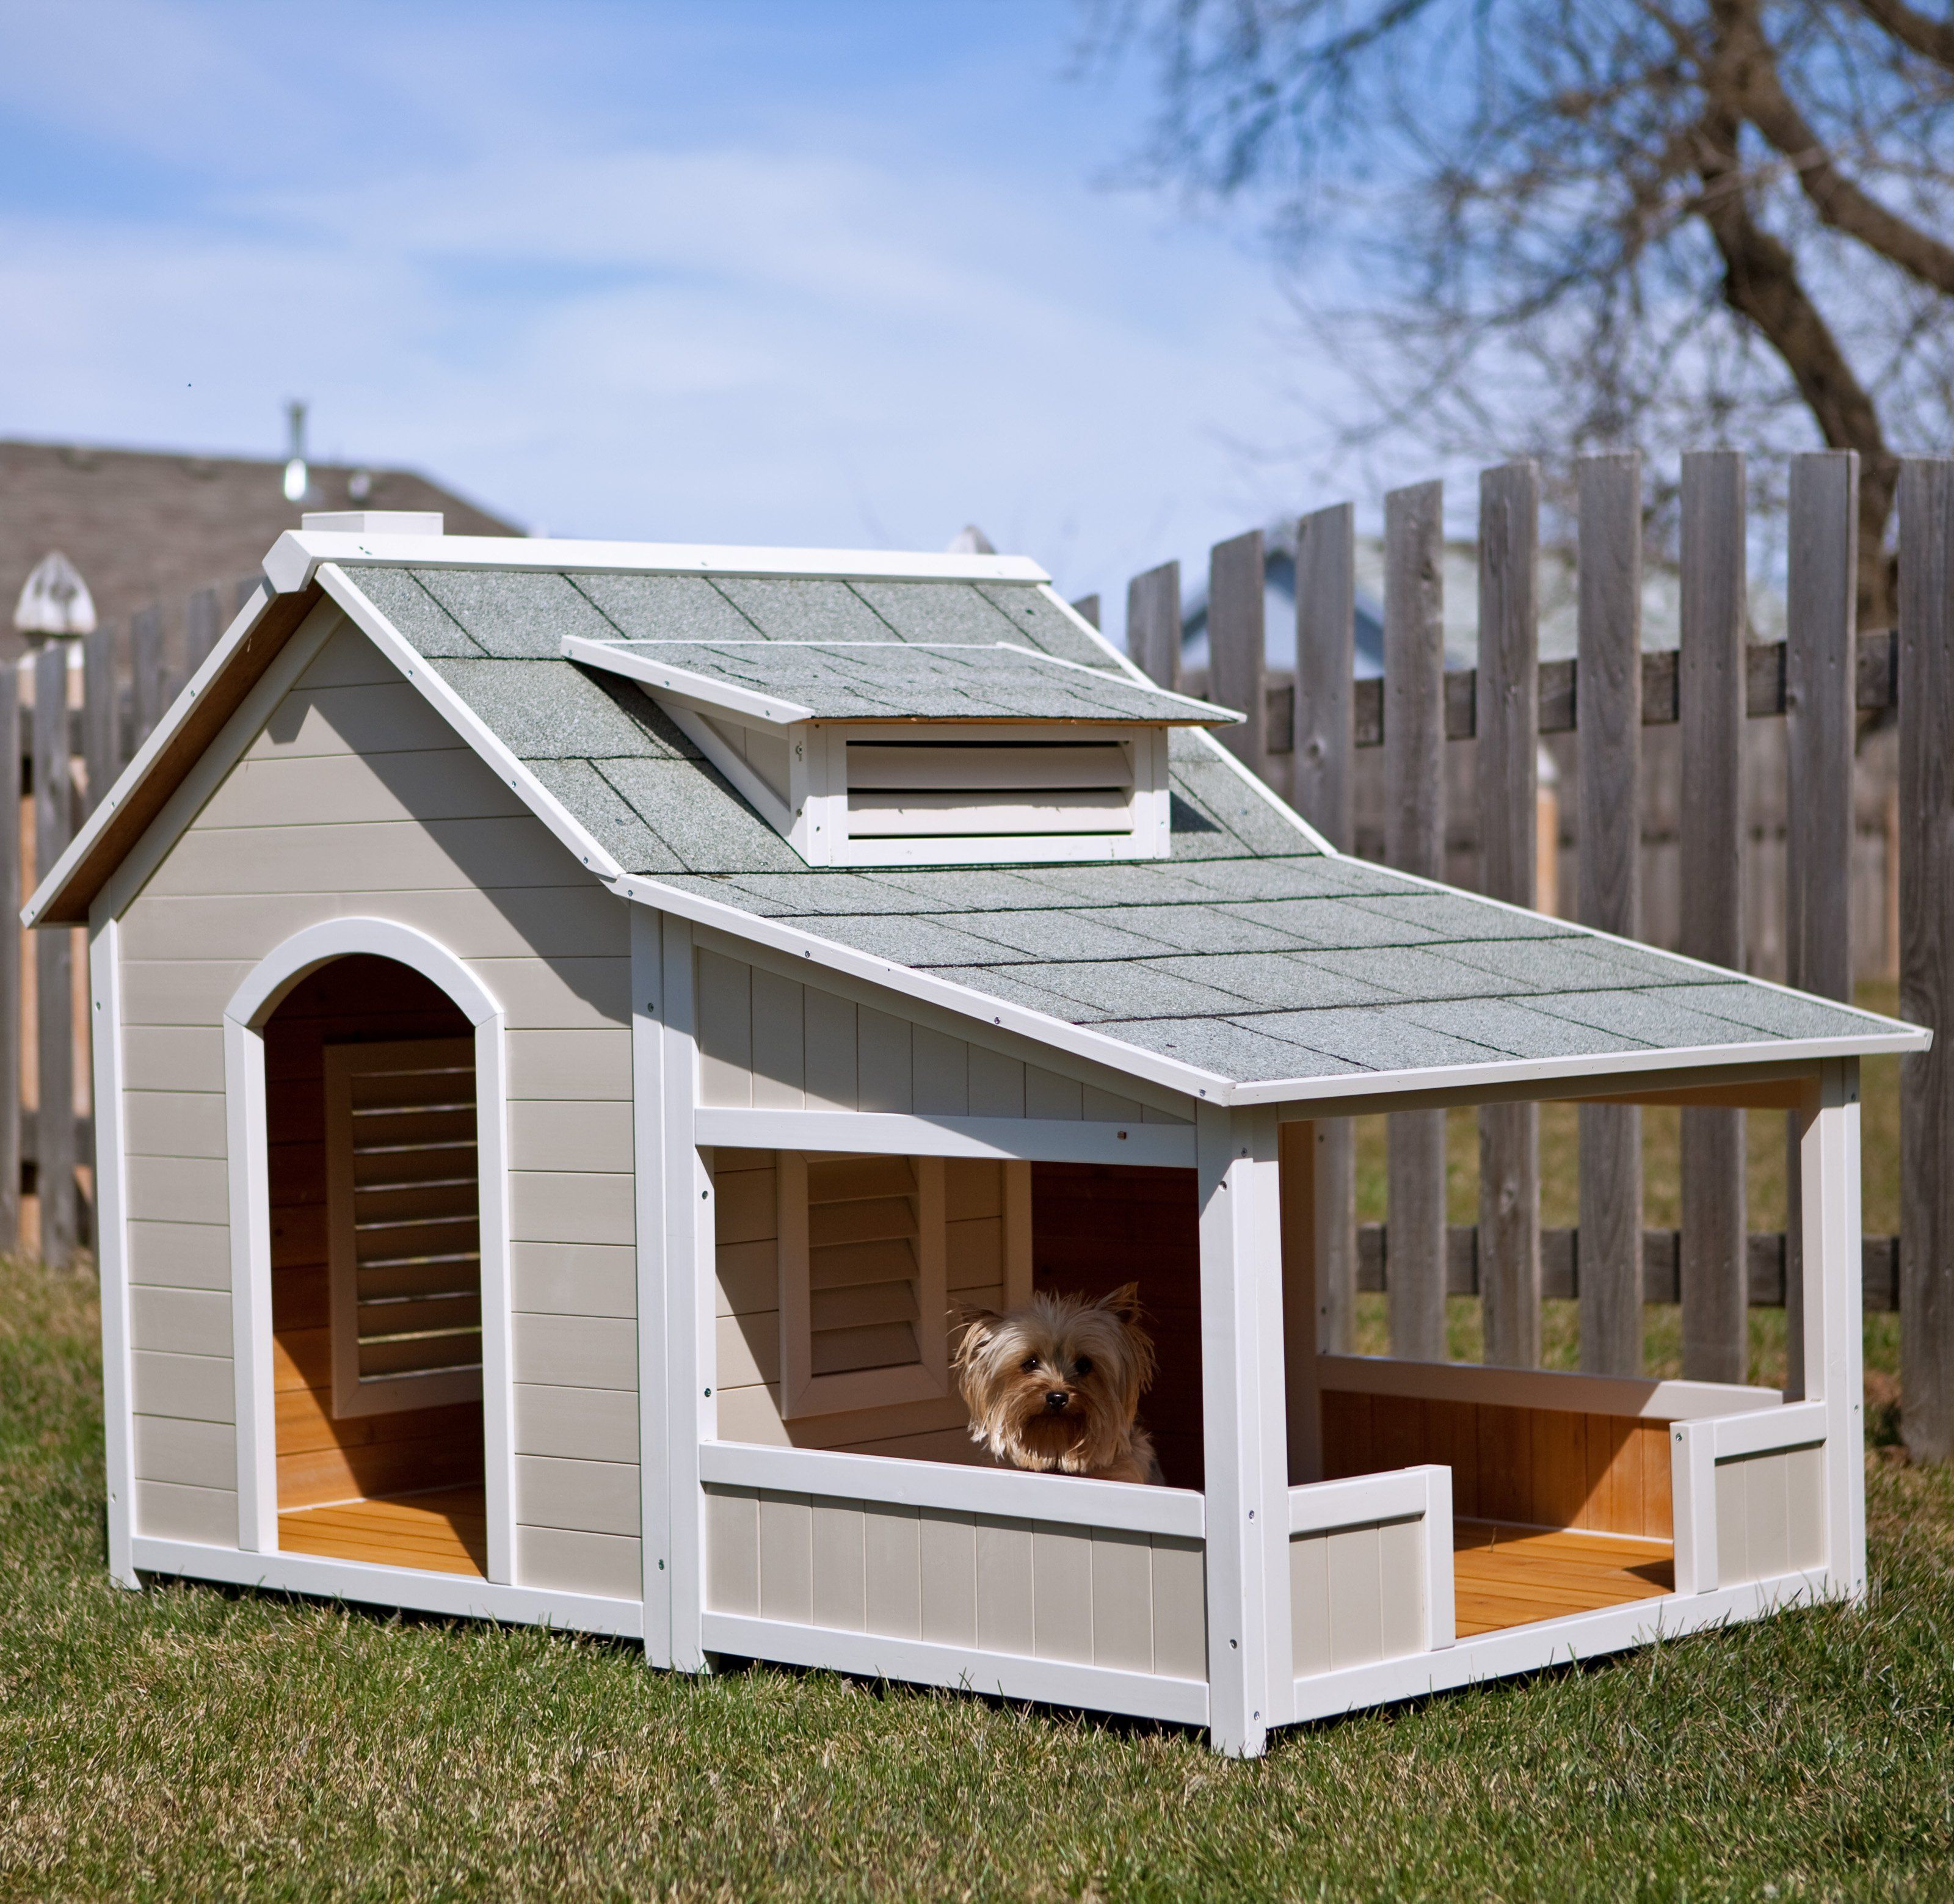 Peek Inside The Plush Pads Of The World S Most Privileged Pups Wood Dog House Cool Dog Houses Dog House With Porch